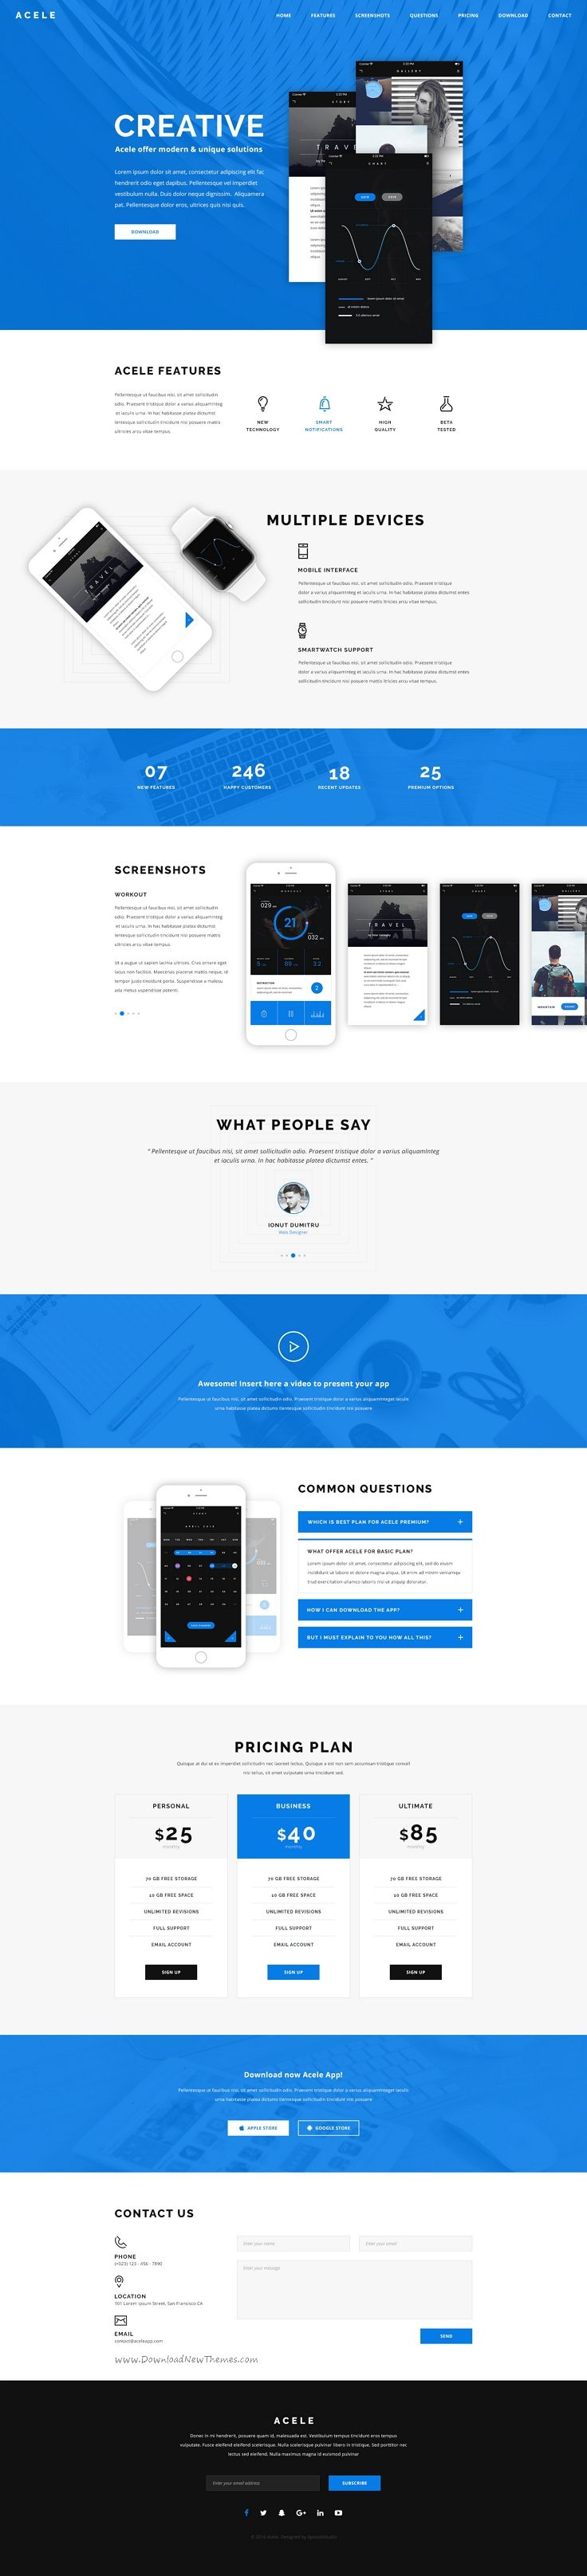 Acele is  creative clear and modern psd template for apps website download also rh ar pinterest